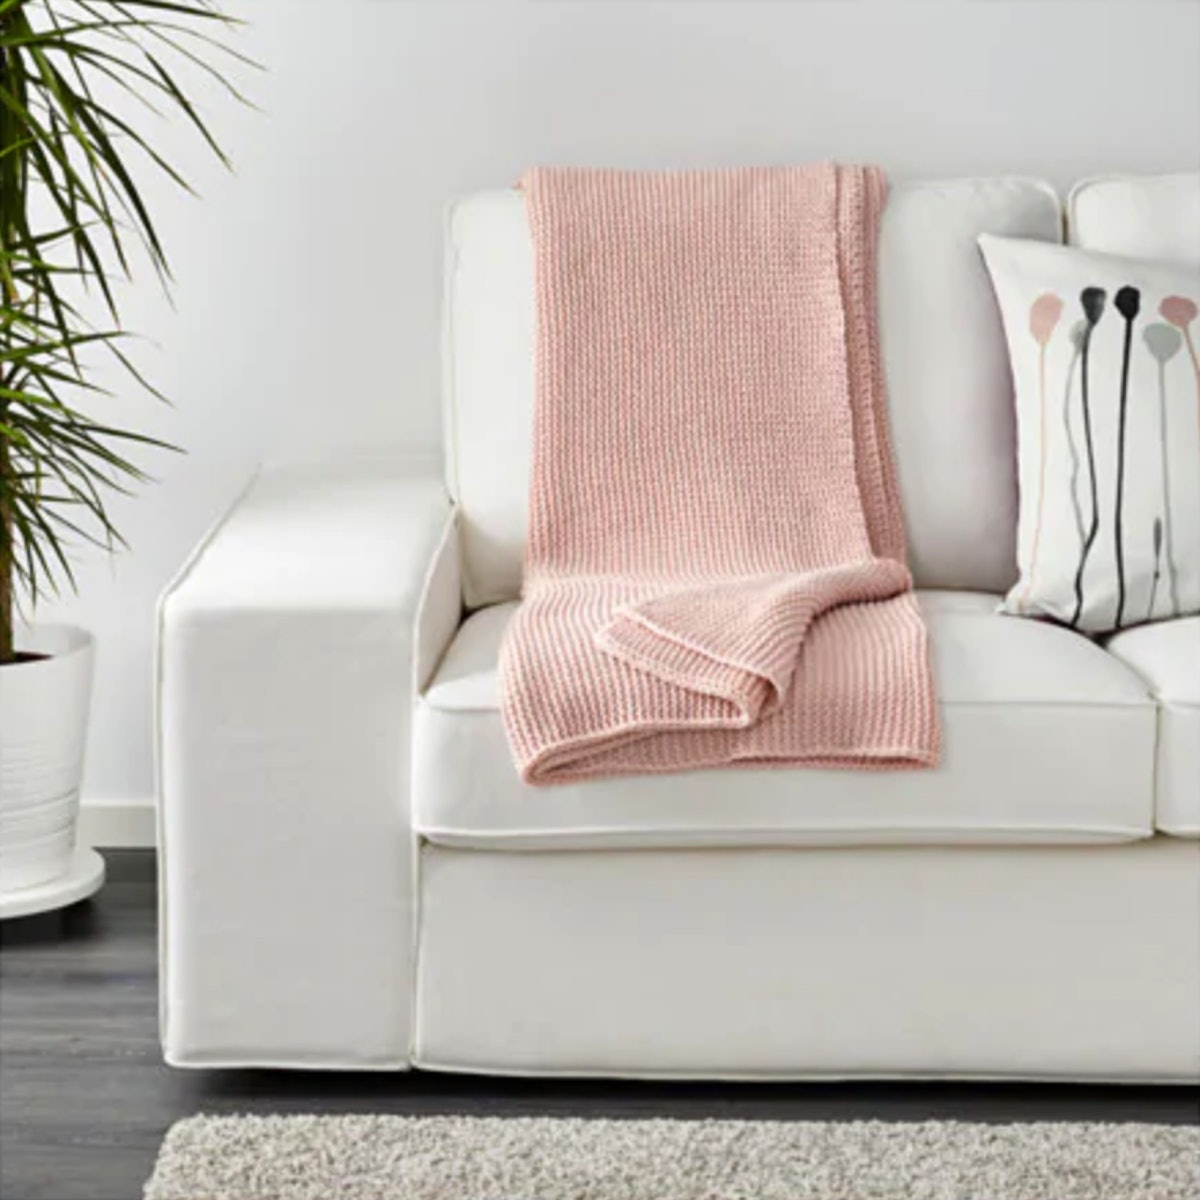 16 IKEA Items Under $30 That Will Completely Change Your Space